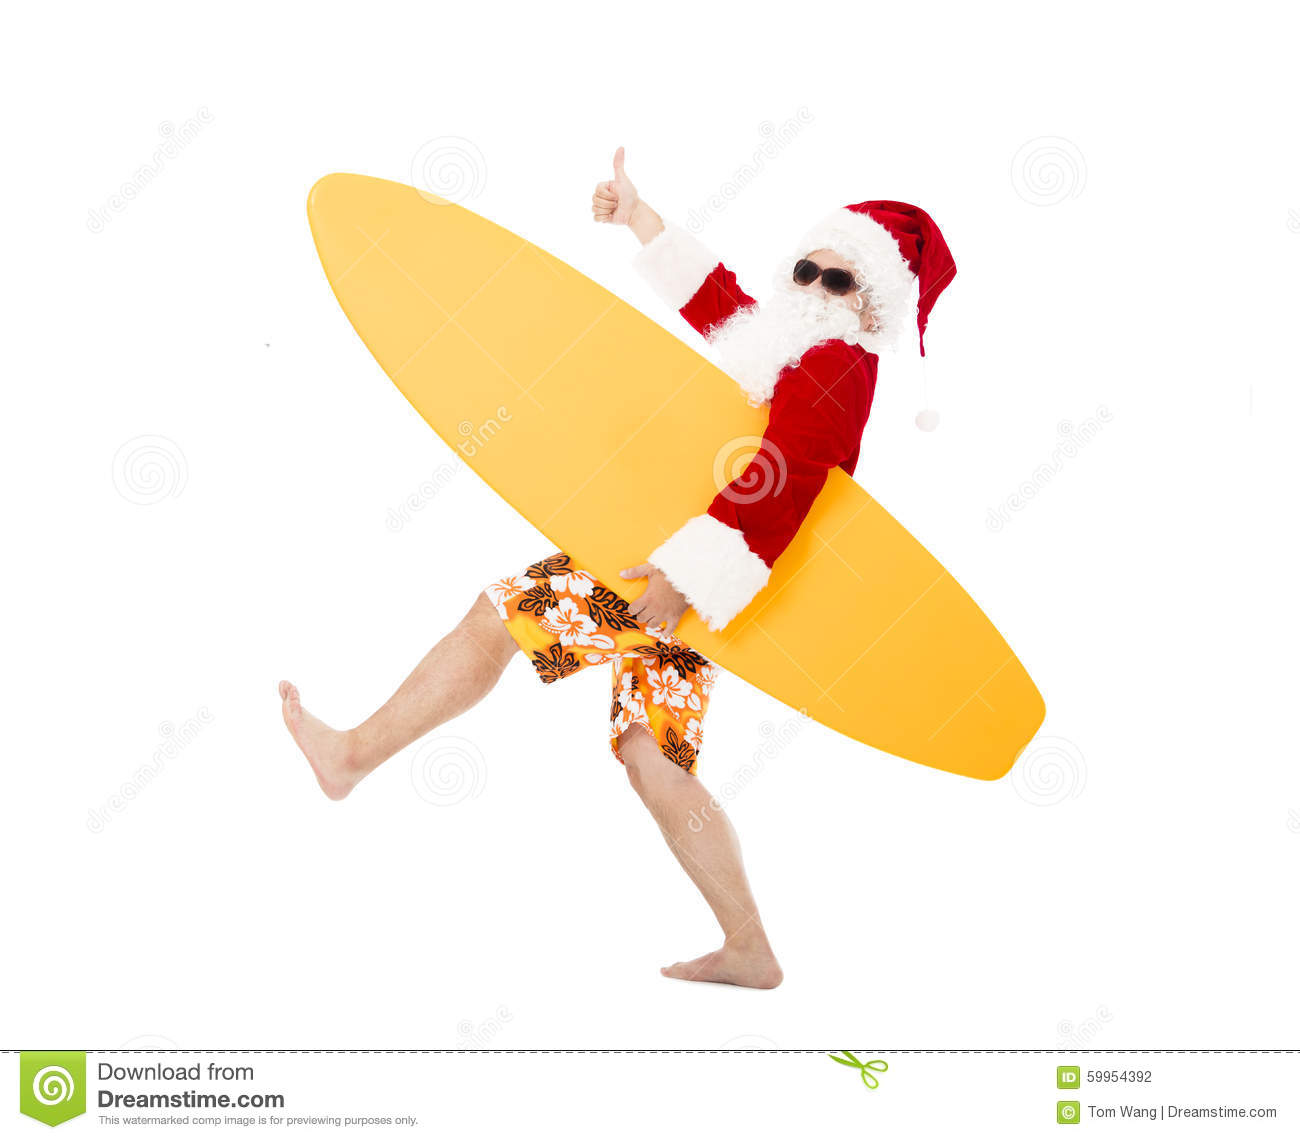 Santa Claus holding surf board with thumb up